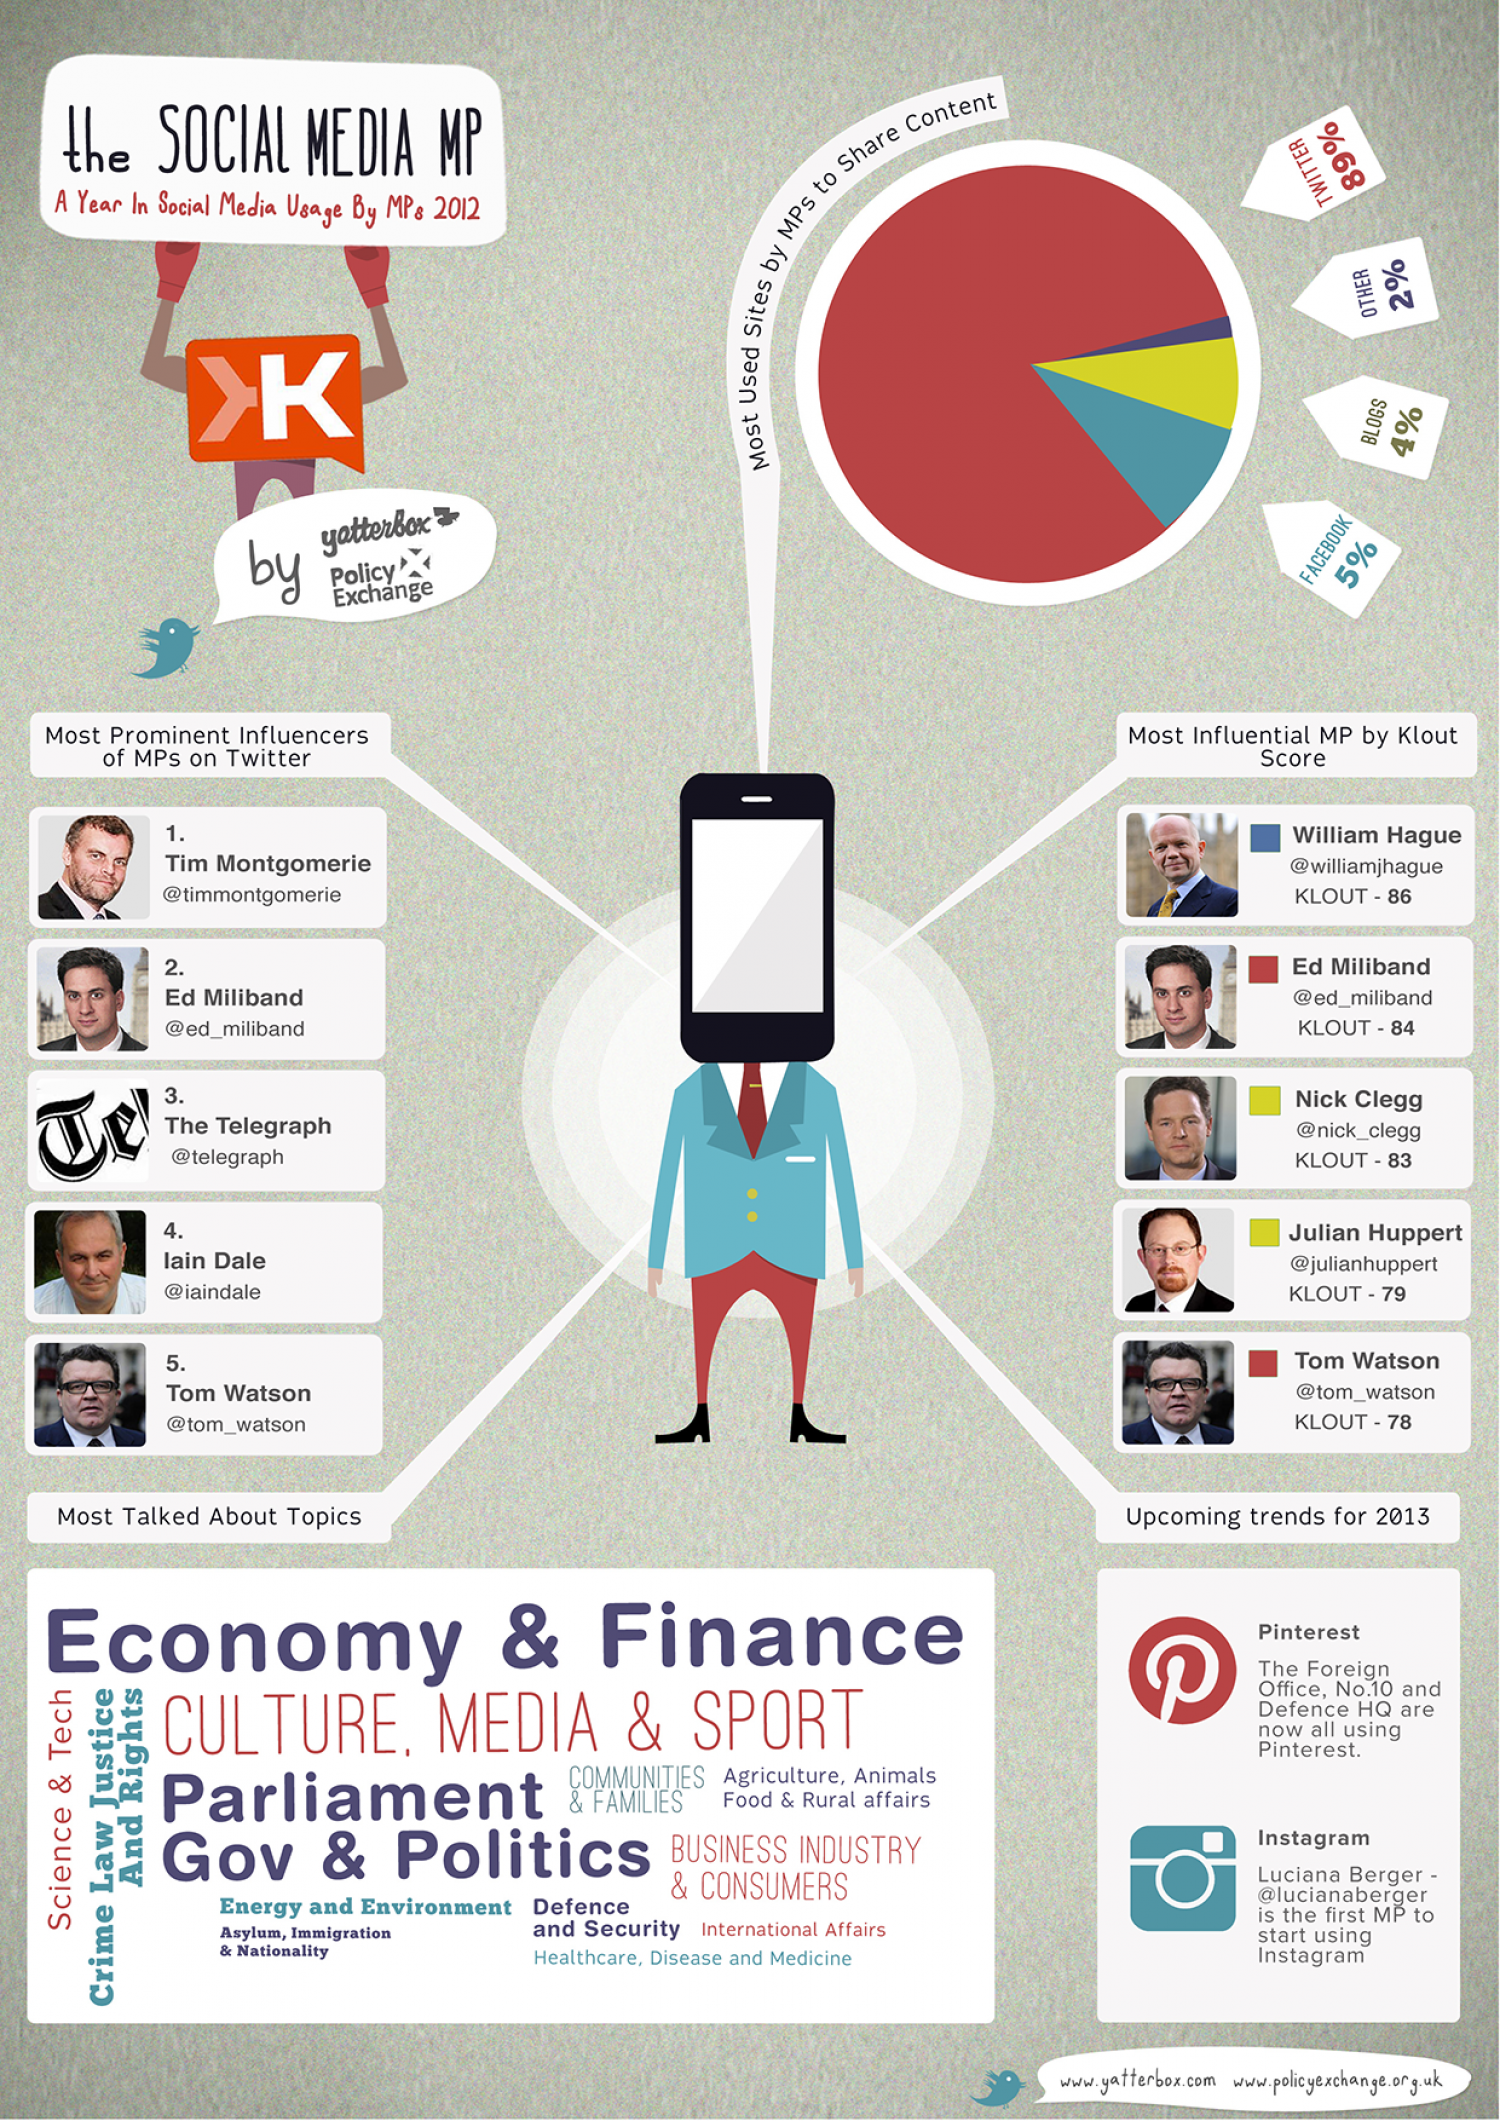 The Social Media MP by @yatterbox Infographic